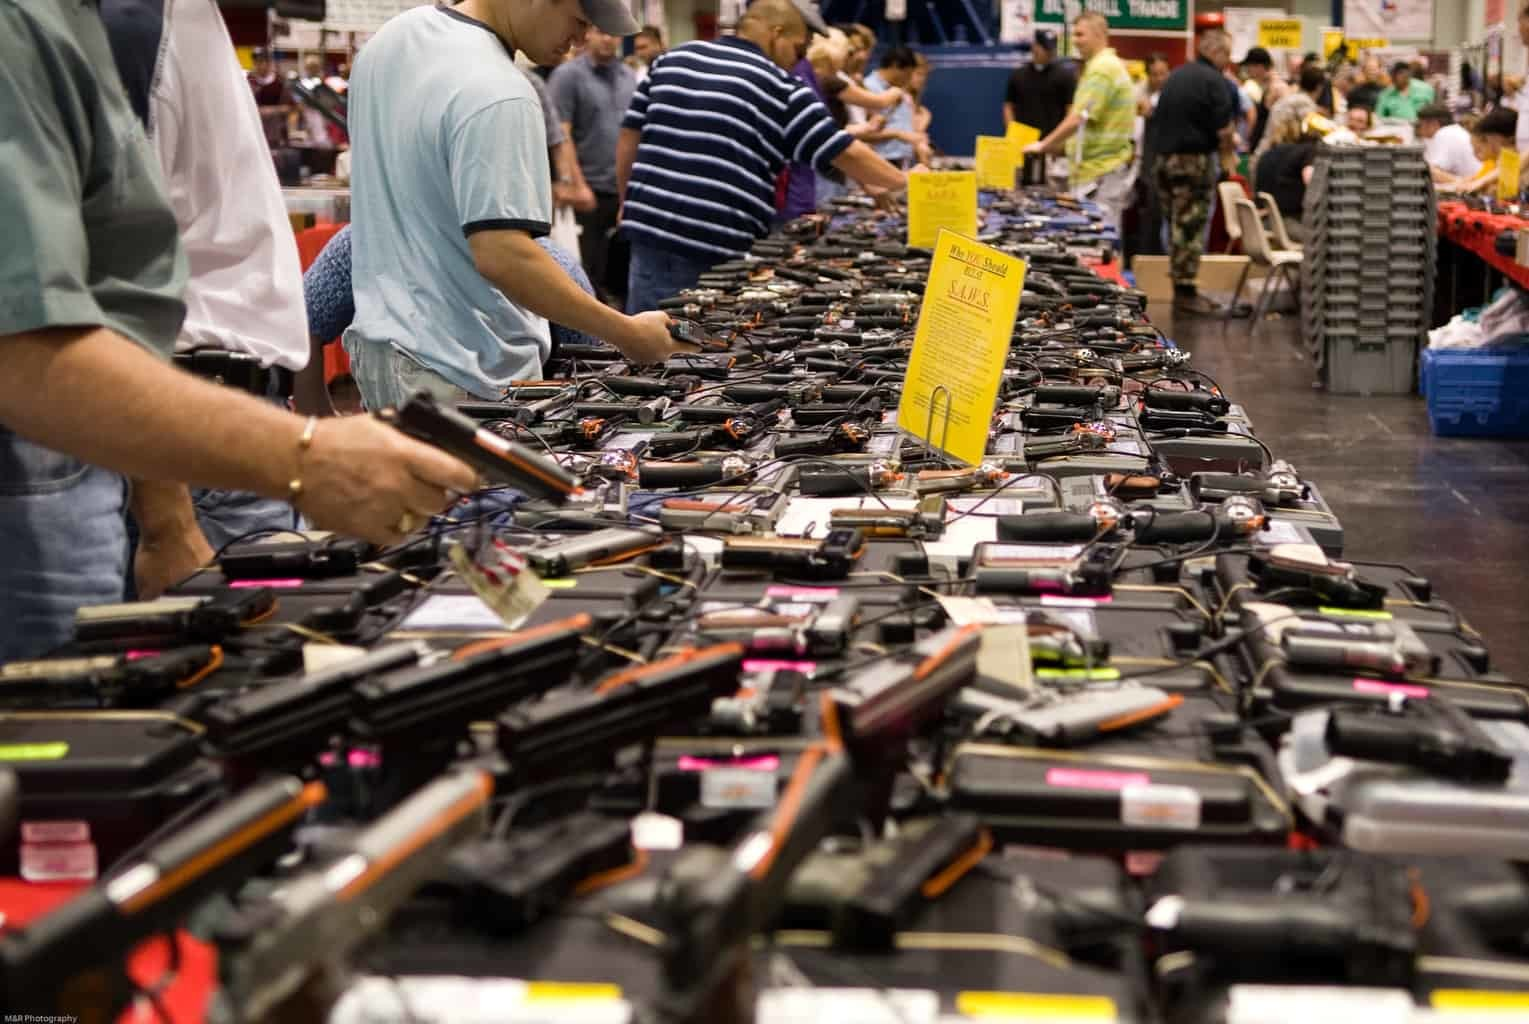 Getting Ready to Sell My Home, Can I Take My Firearms?